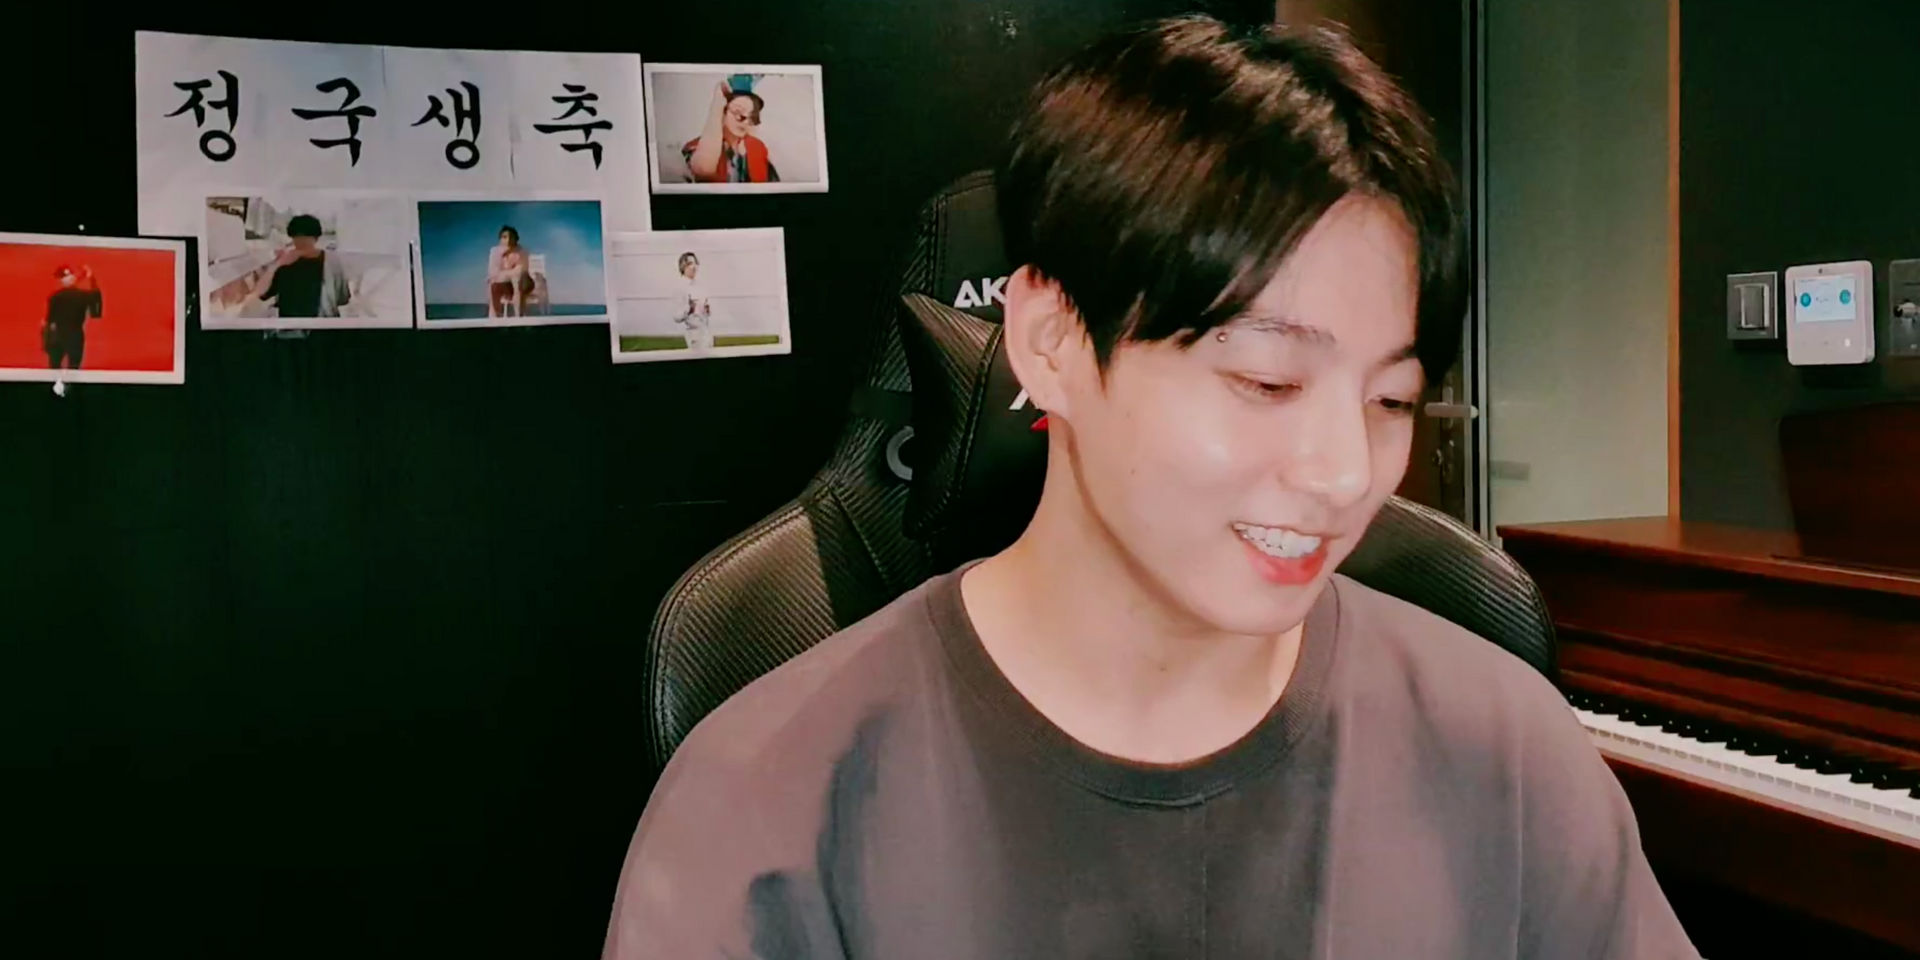 BTS' Jungkook composes and arranges songs with ARMY comments as lyrics for birthday countdown – watch